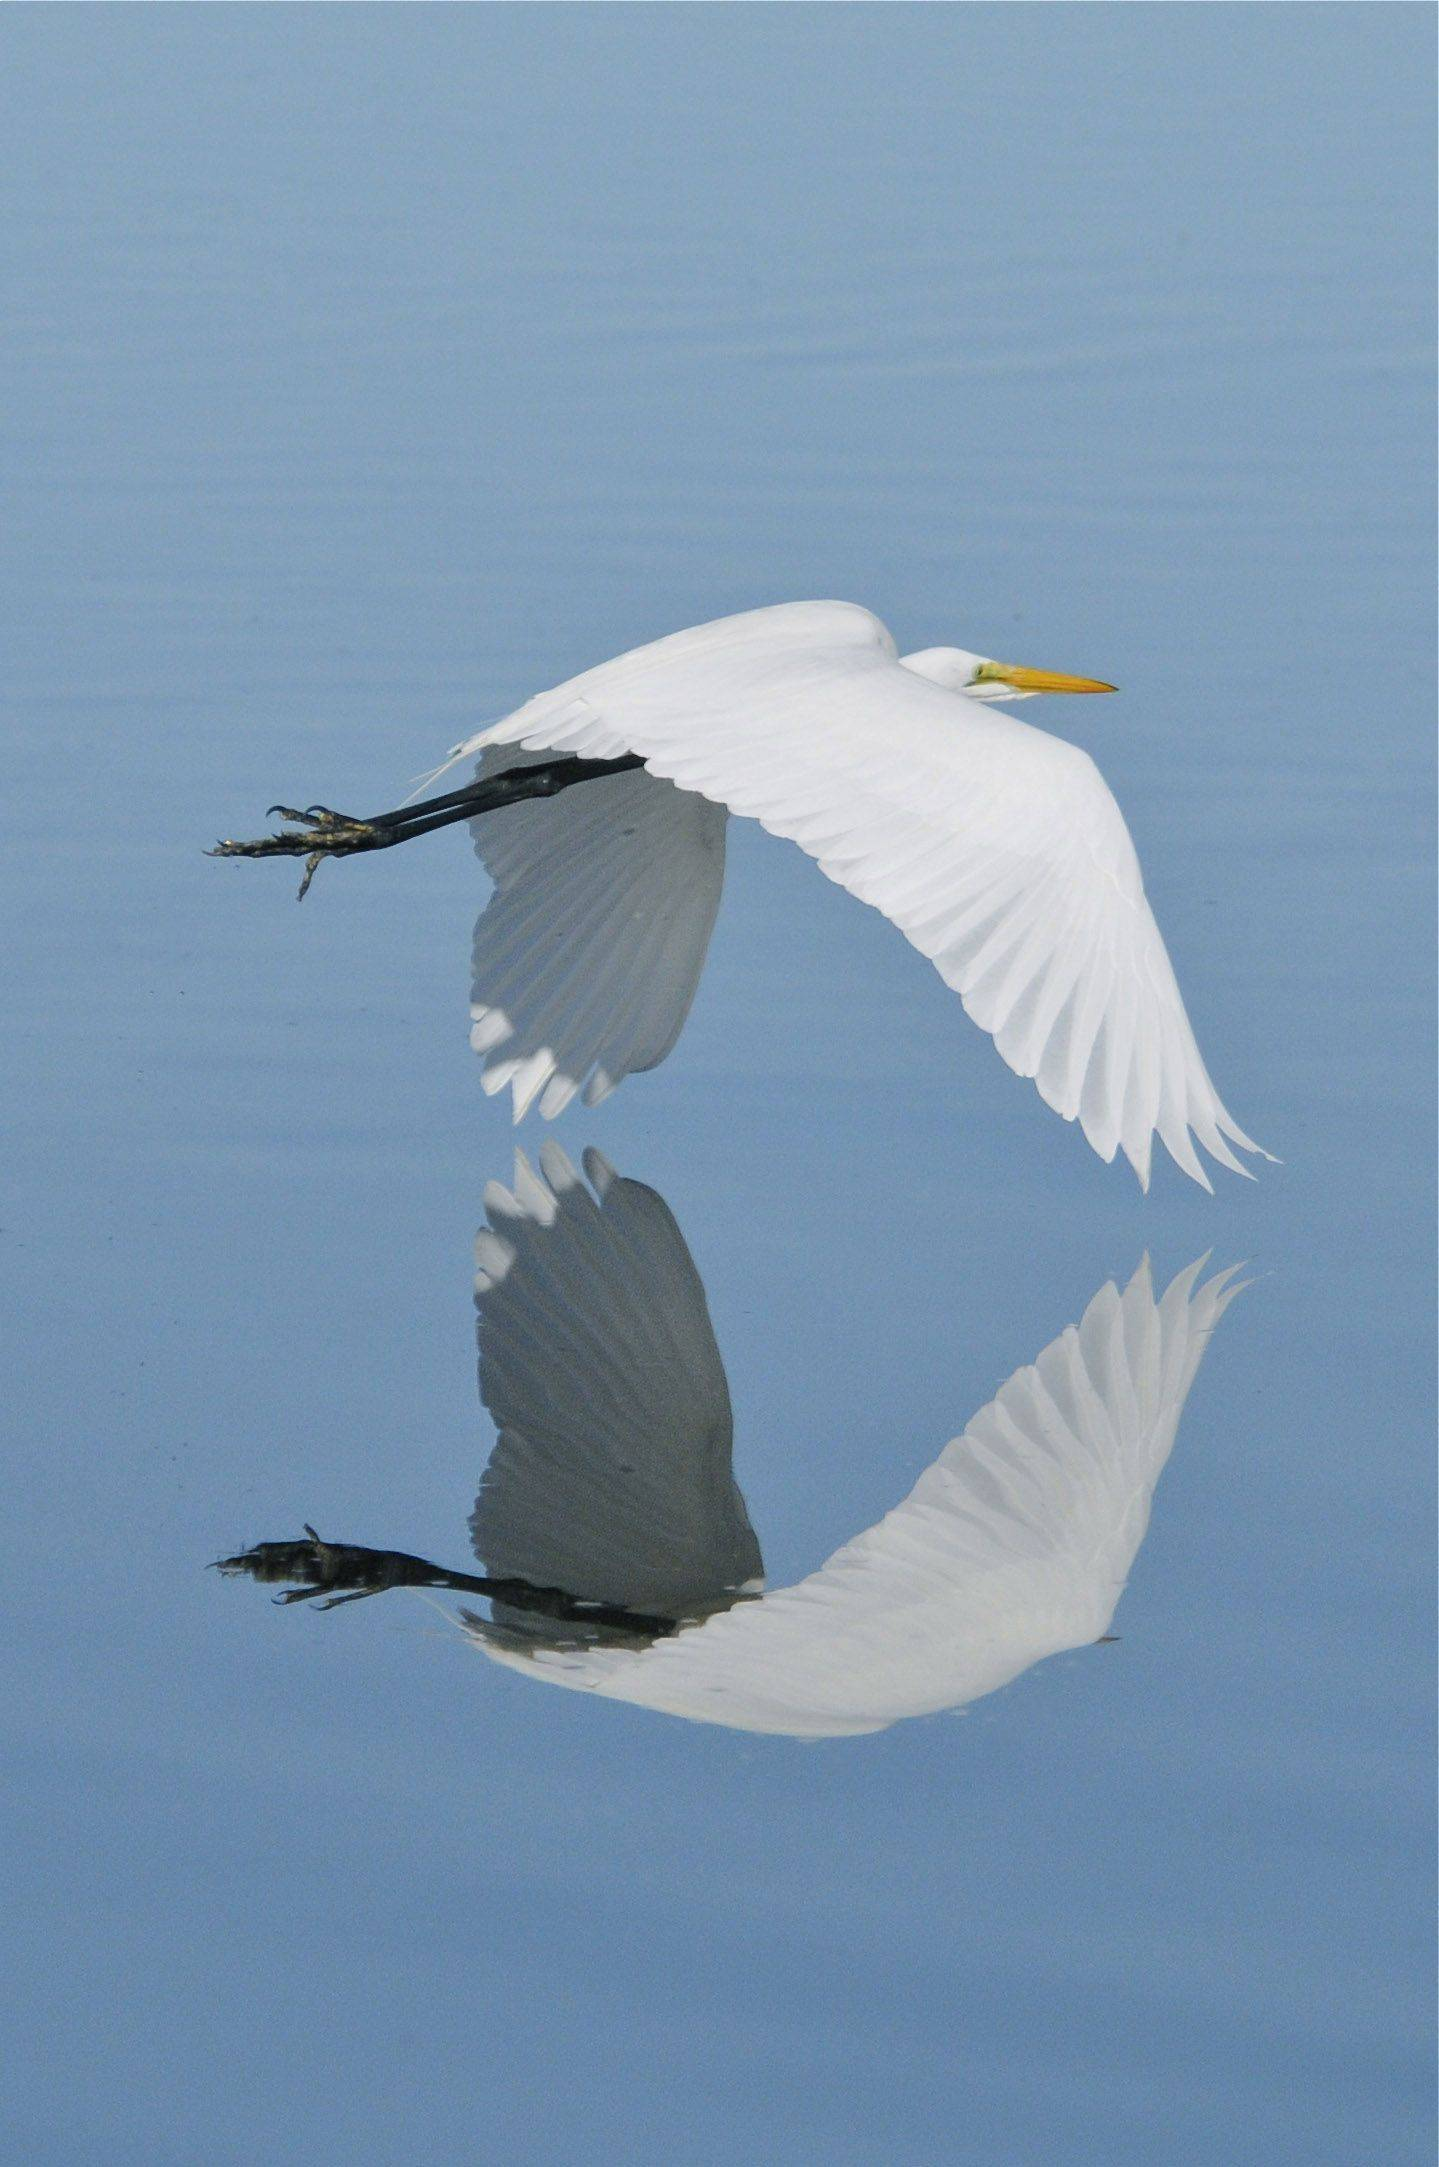 Bill Merrick of Elk Grove VillageA Great Egret is in flight with it's reflection�in January at the Ding Darling Refuge on Sanibel Island, Florida.